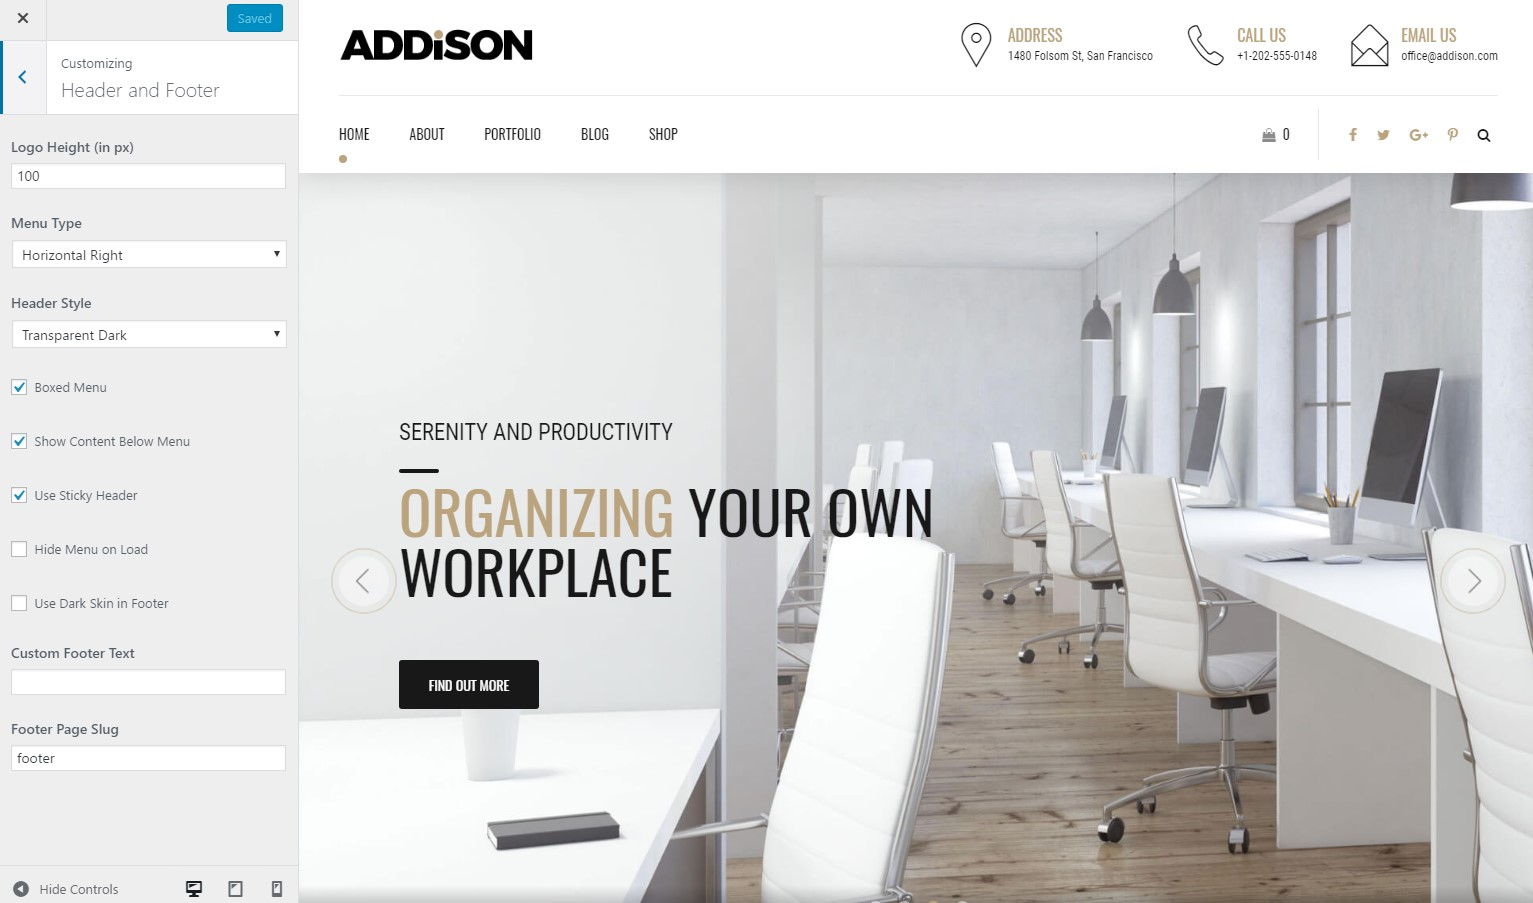 https://documentation.bold-themes.com/addison/wp-content/uploads/sites/18/2017/06/header-and-footer.jpg